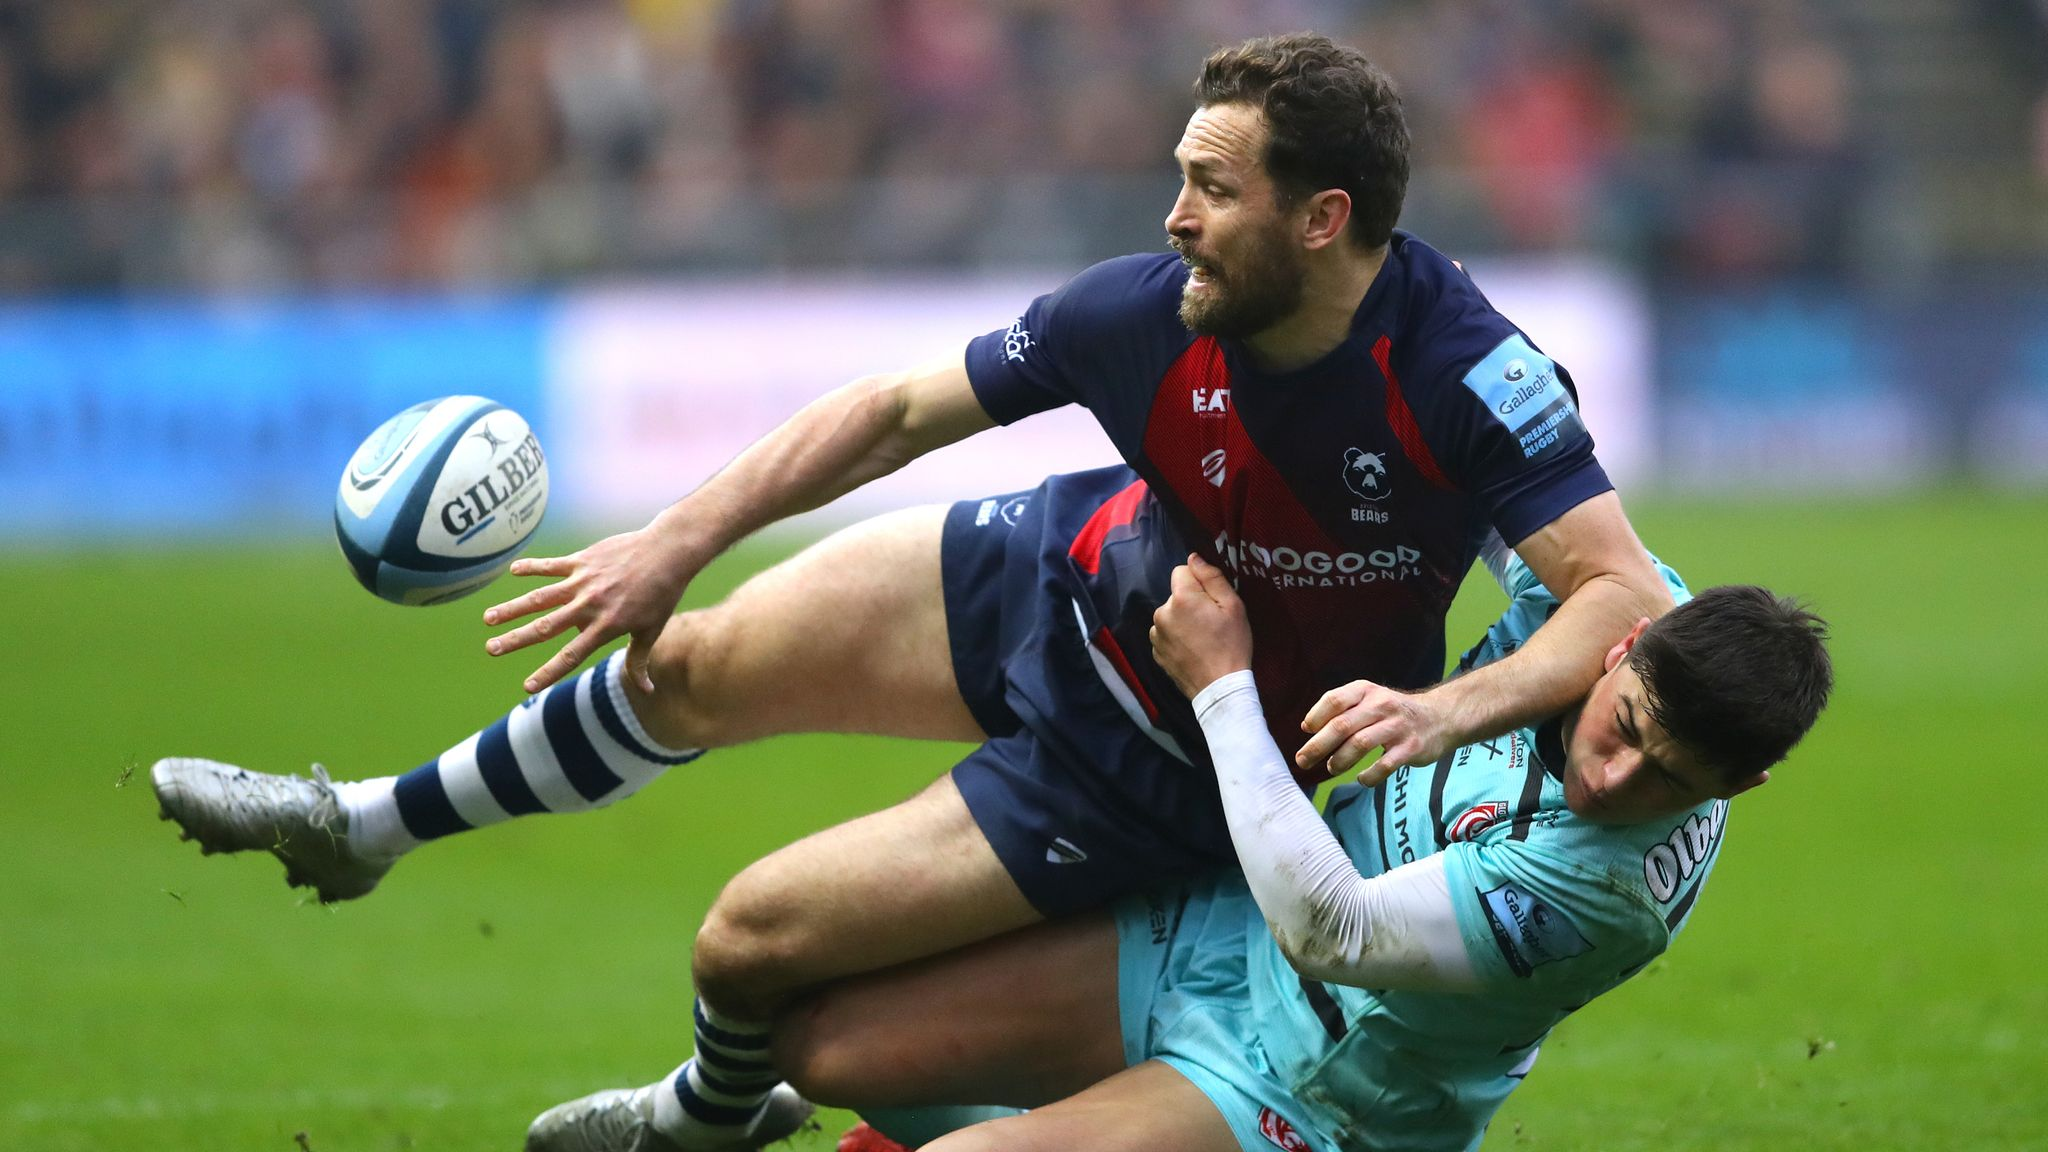 Gallagher Premiership: Bristol win derby, Exeter lose at home to Sale